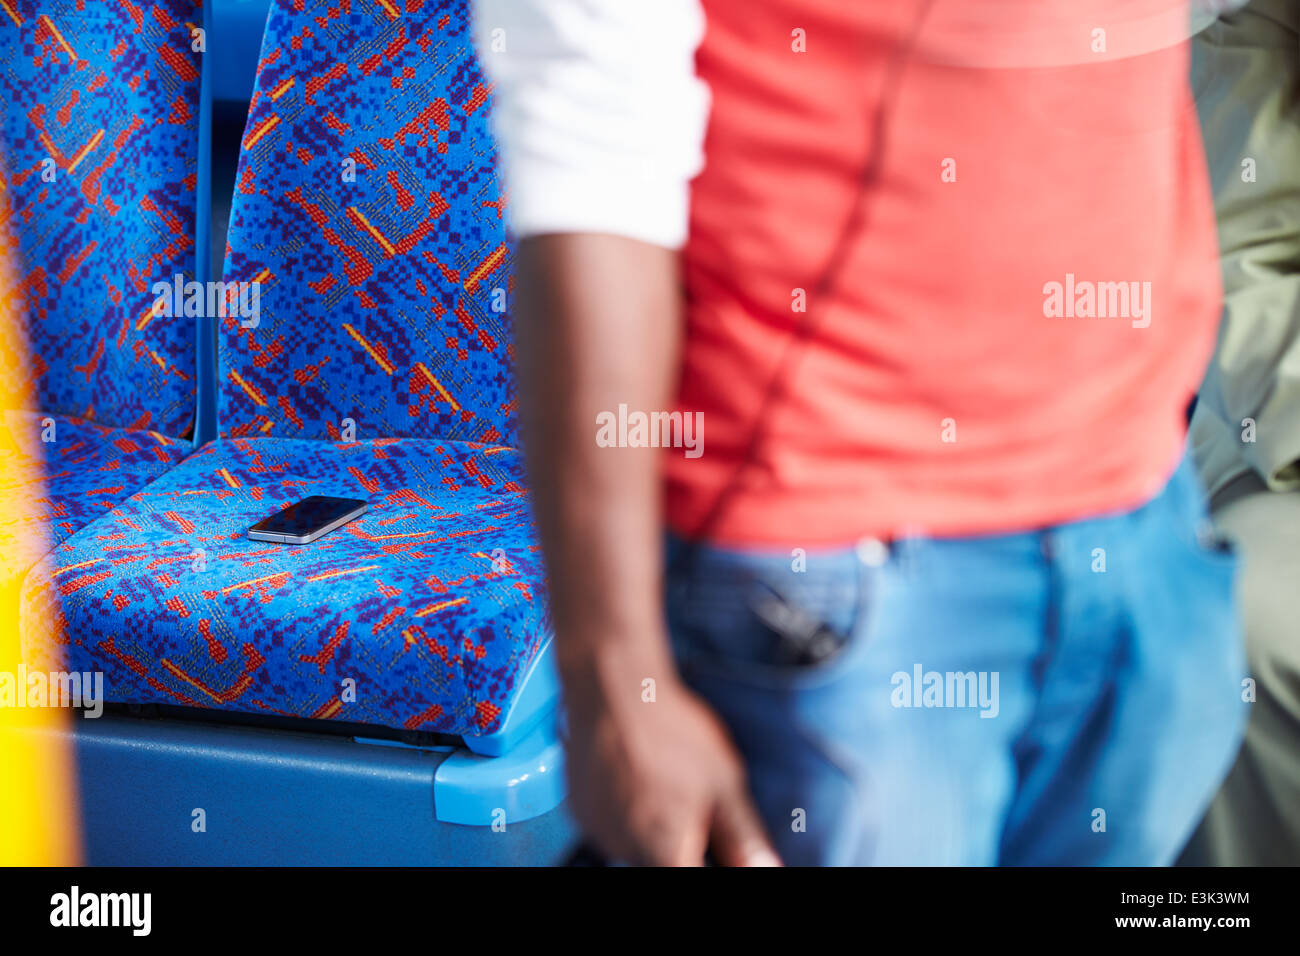 Passenger Leaving Mobile Phone On Seat Of Bus - Stock Image